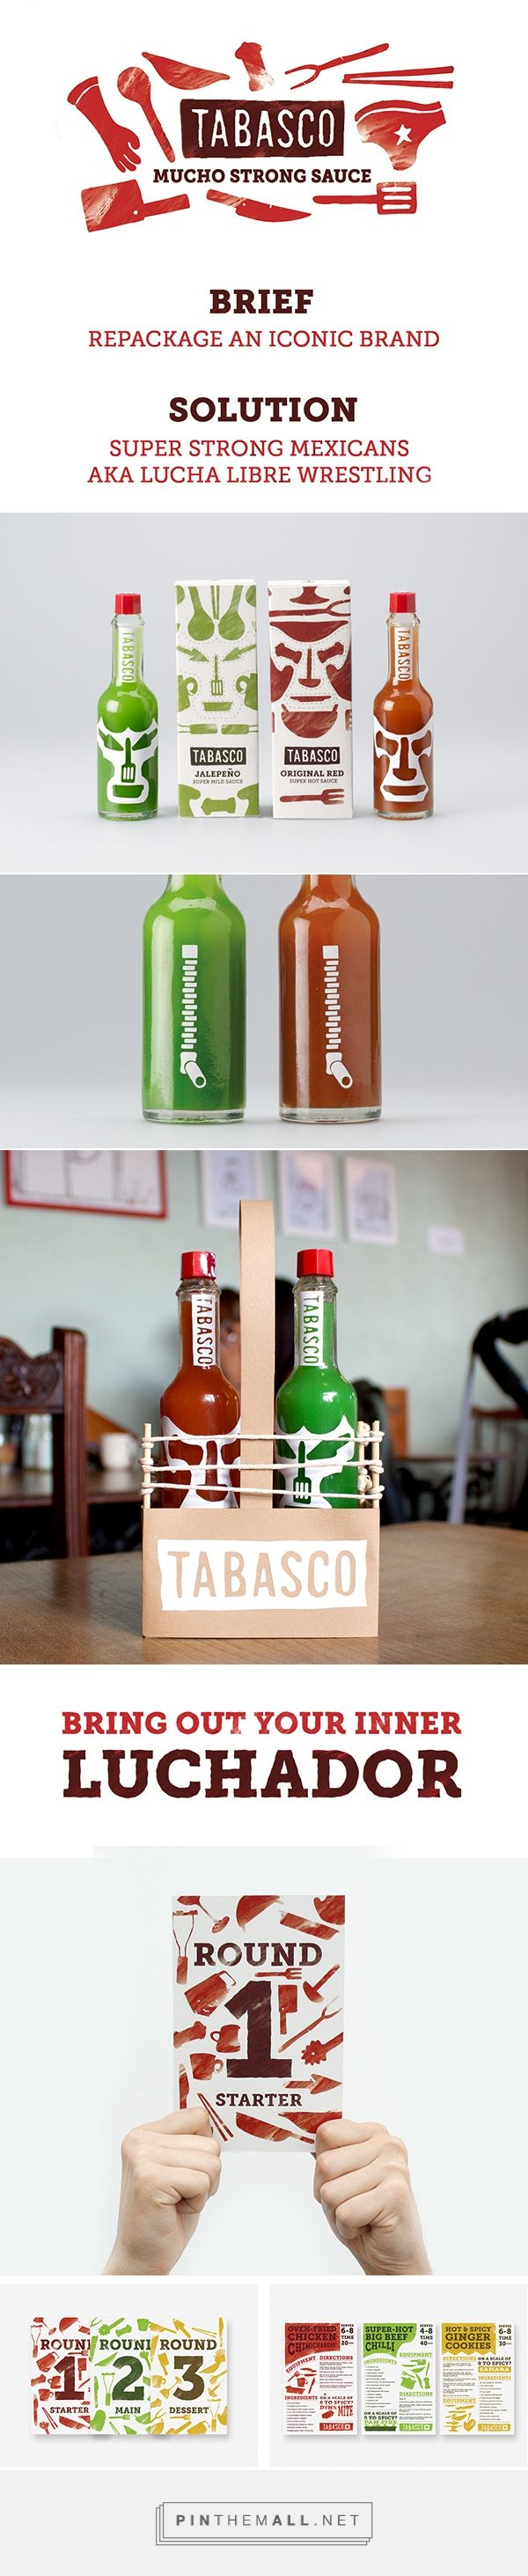 Tabasco Pepper Sauce rebranding by Tony Roberts on Behance curated by Packaging Diva PD. Well, what do you think about the packaging?